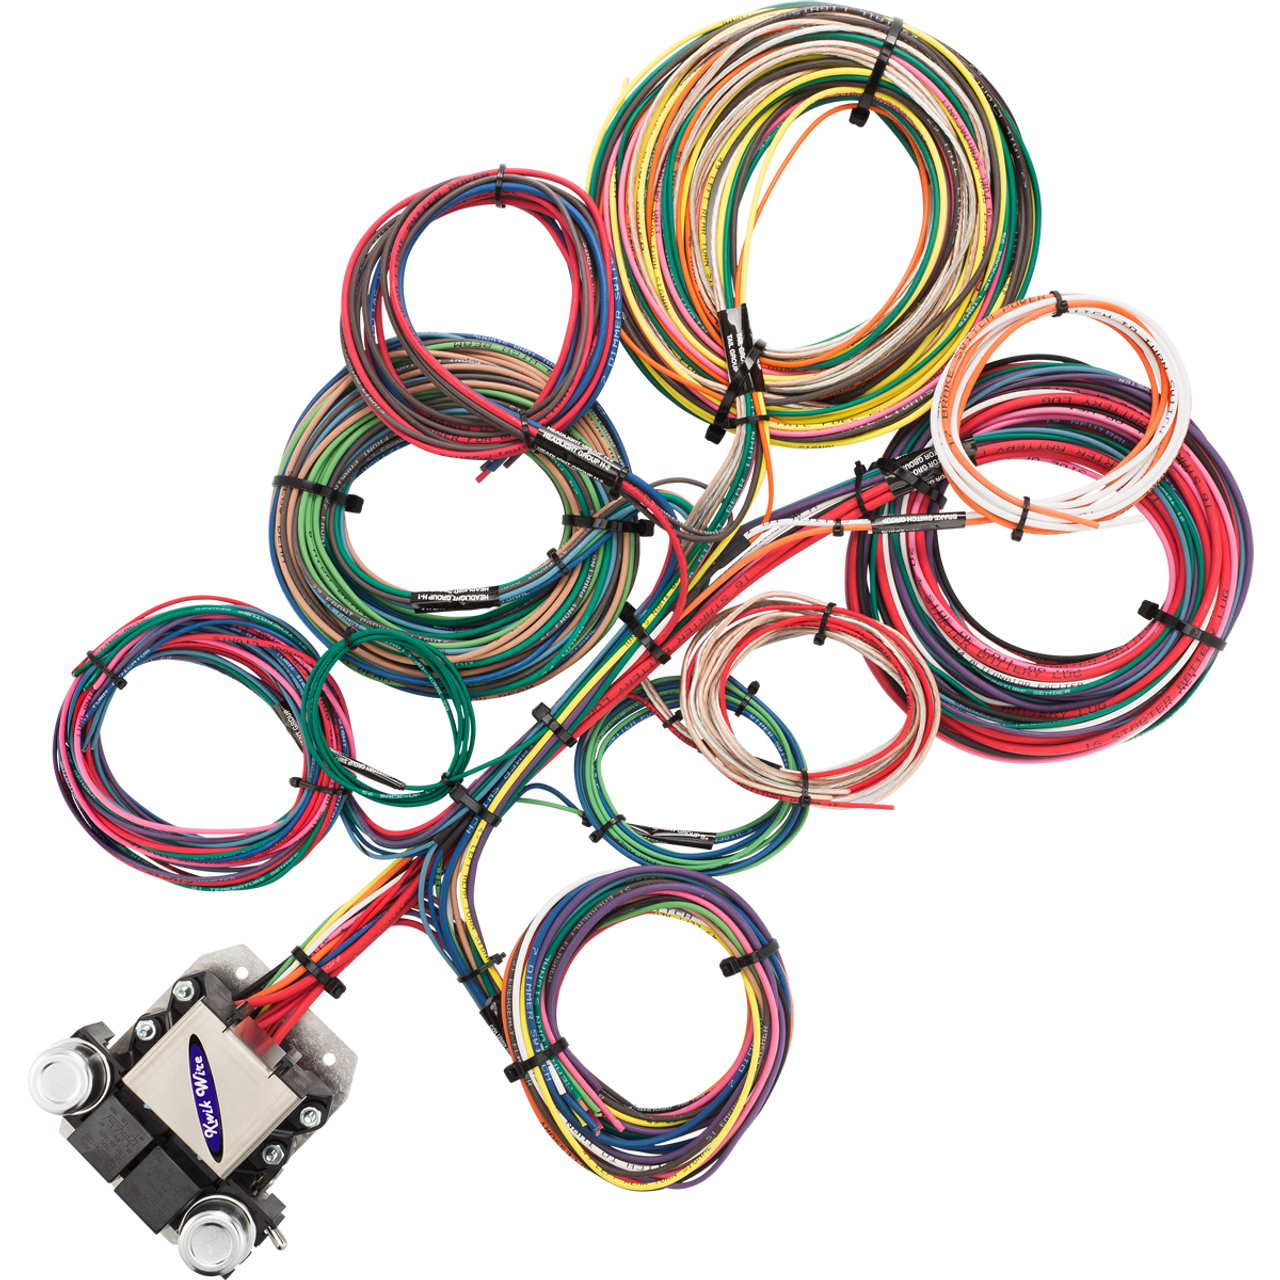 ford wire harness data wiring diagrams8 circuit ford wire harness kwikwire com electrify your ride ford wiring harness ford wire harness